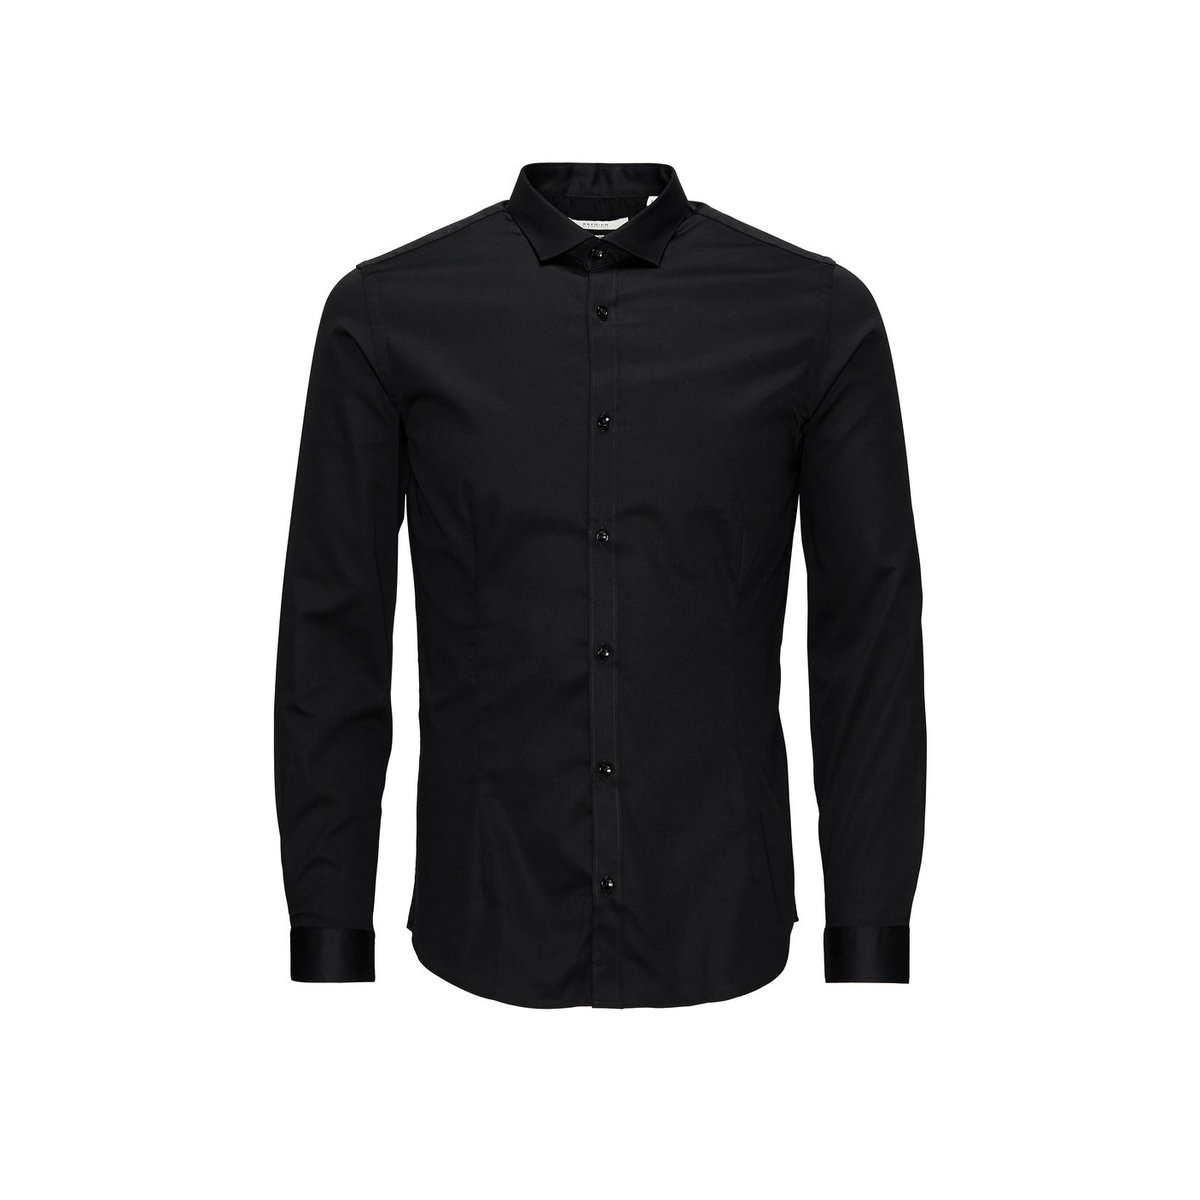 jjprparma shirt 12097662 jack & jones overhemd black